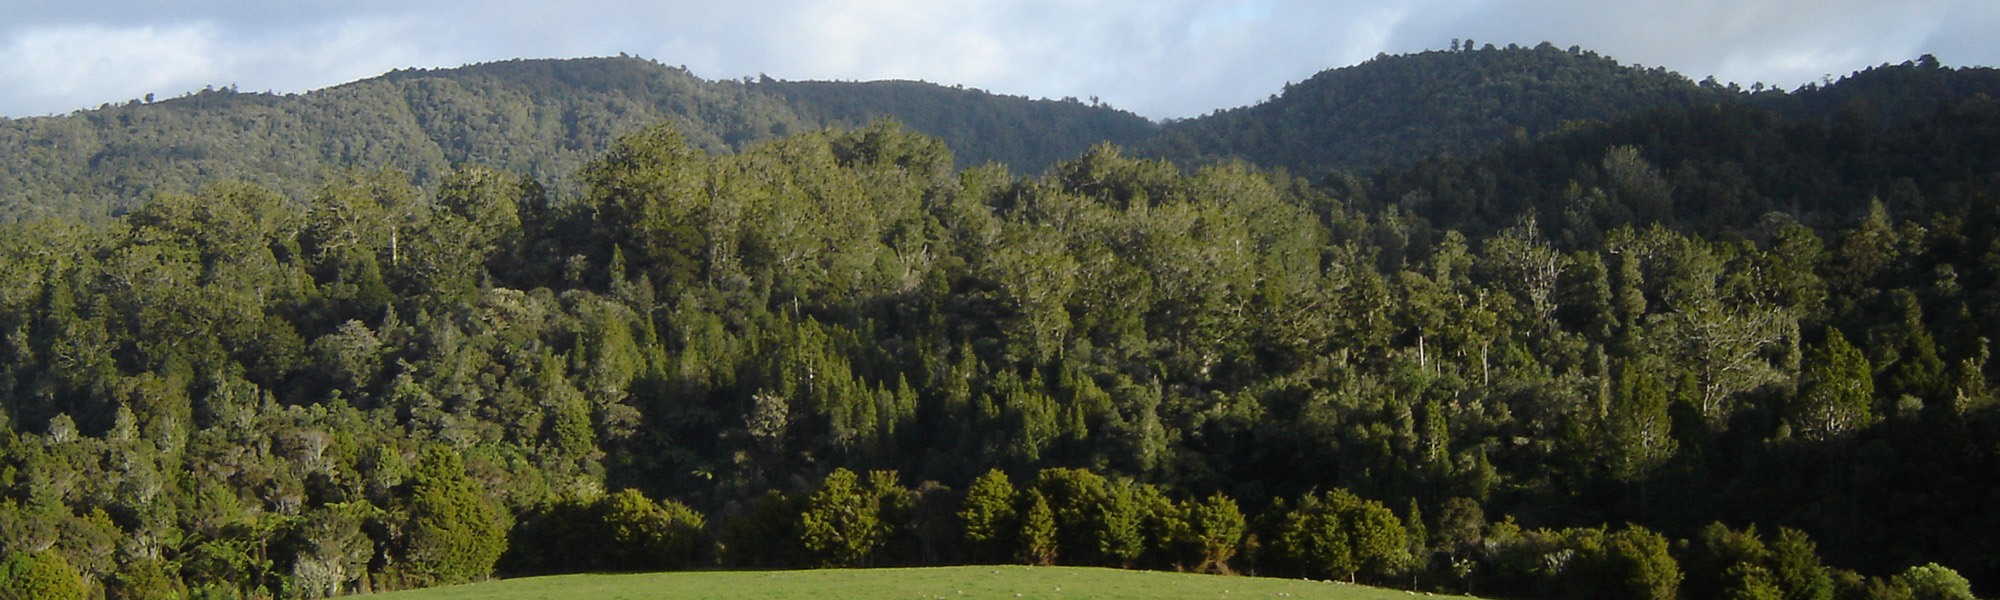 Puketi Forest, Northland New Zealand - kauri trees in foreground, Puketi Plateau on skyline